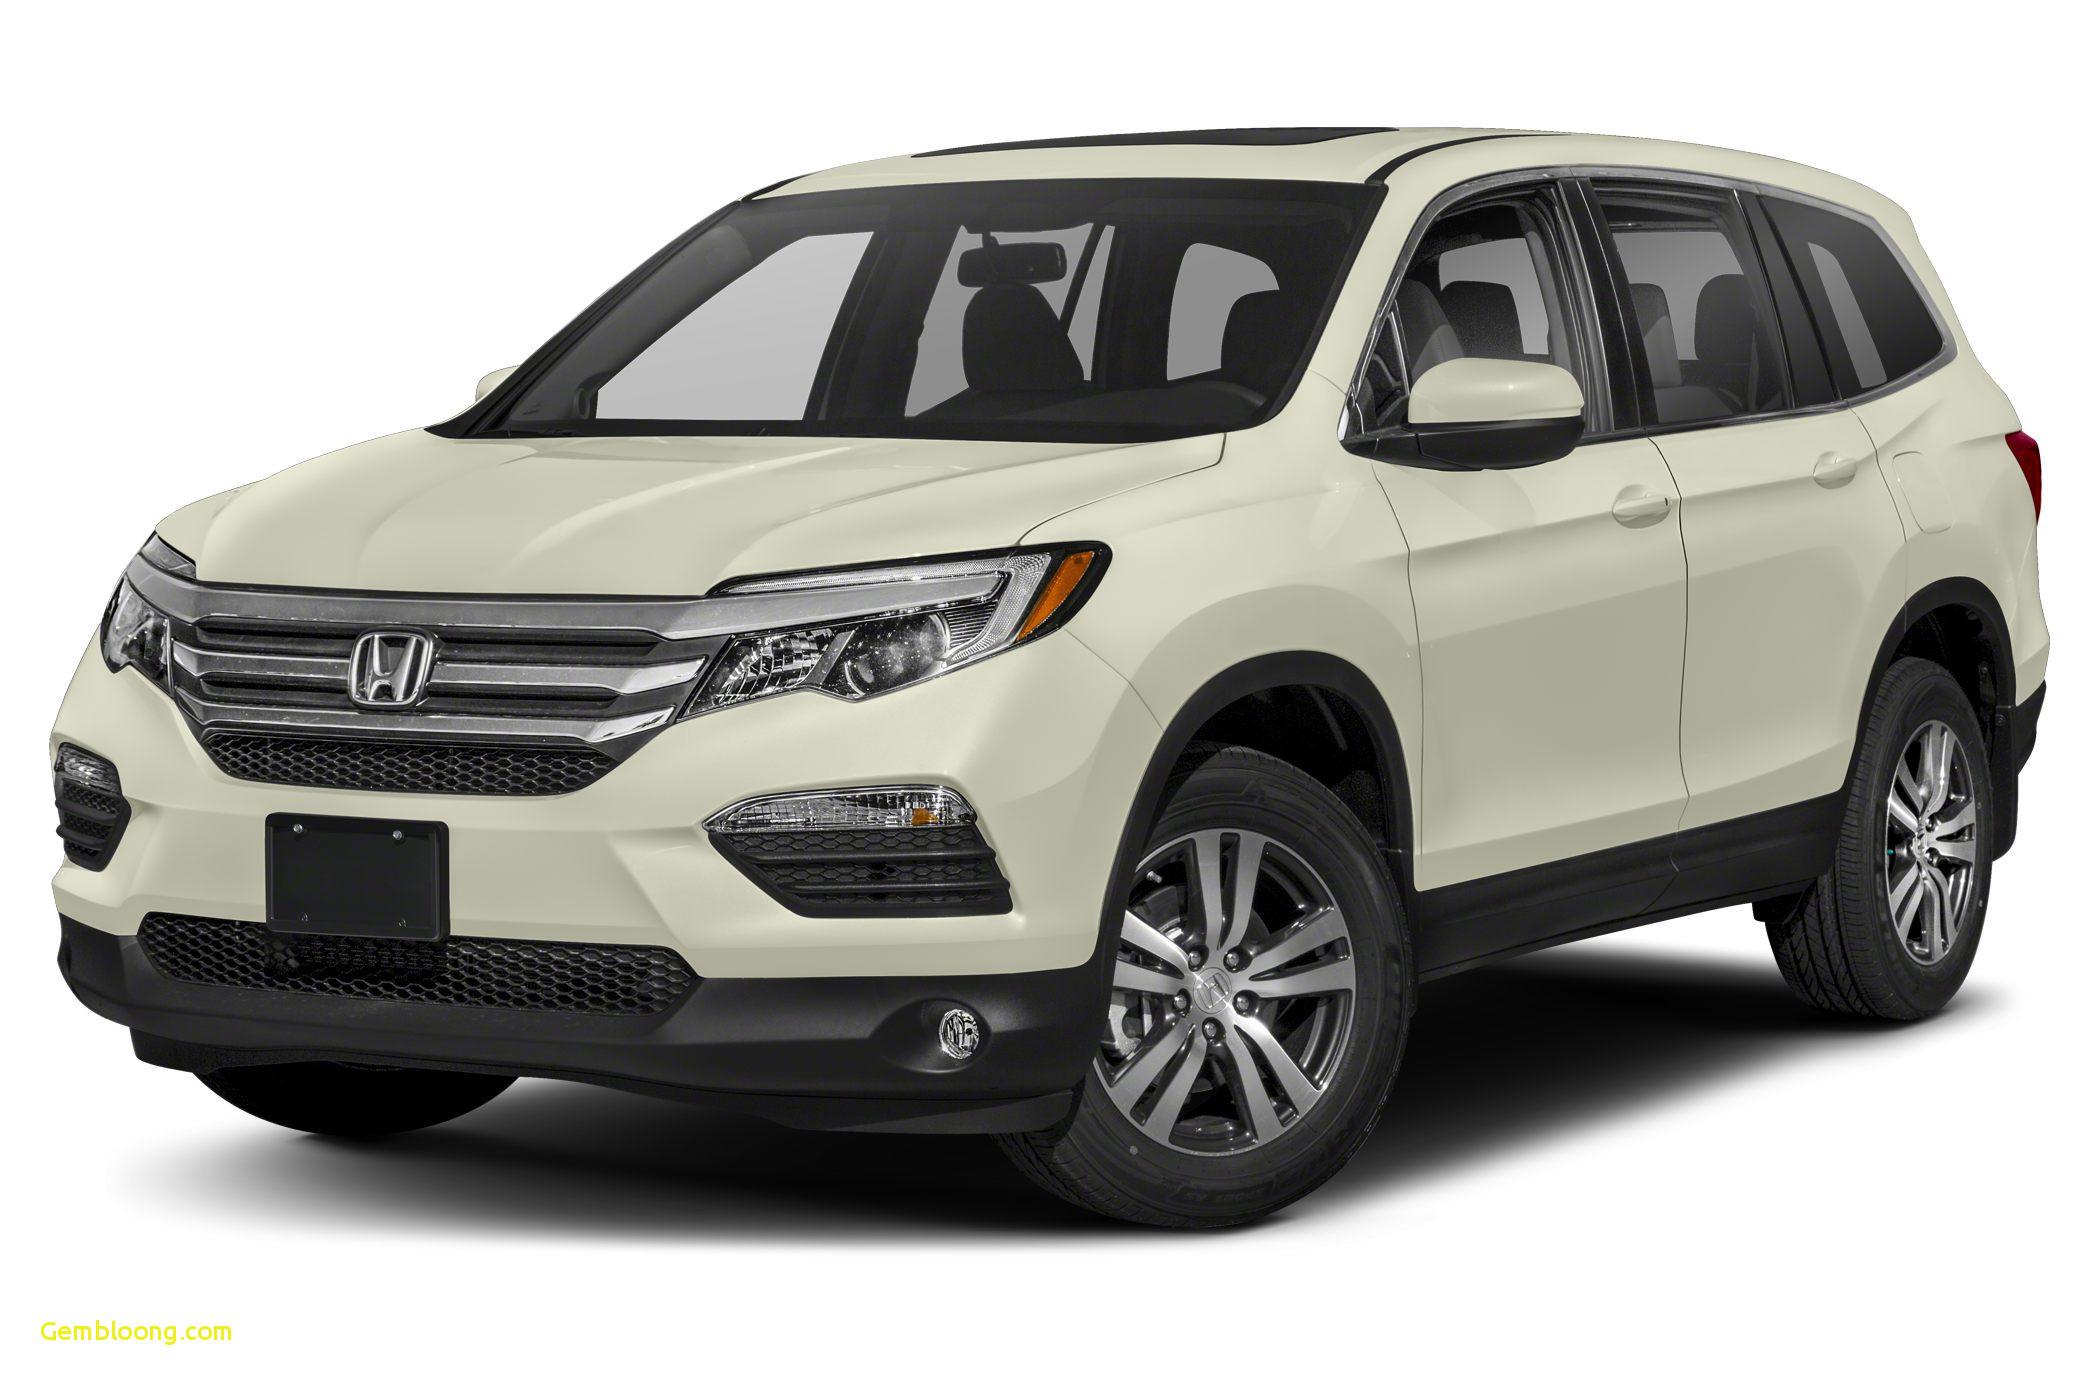 28 New 2020 Honda Pilot Spy Model